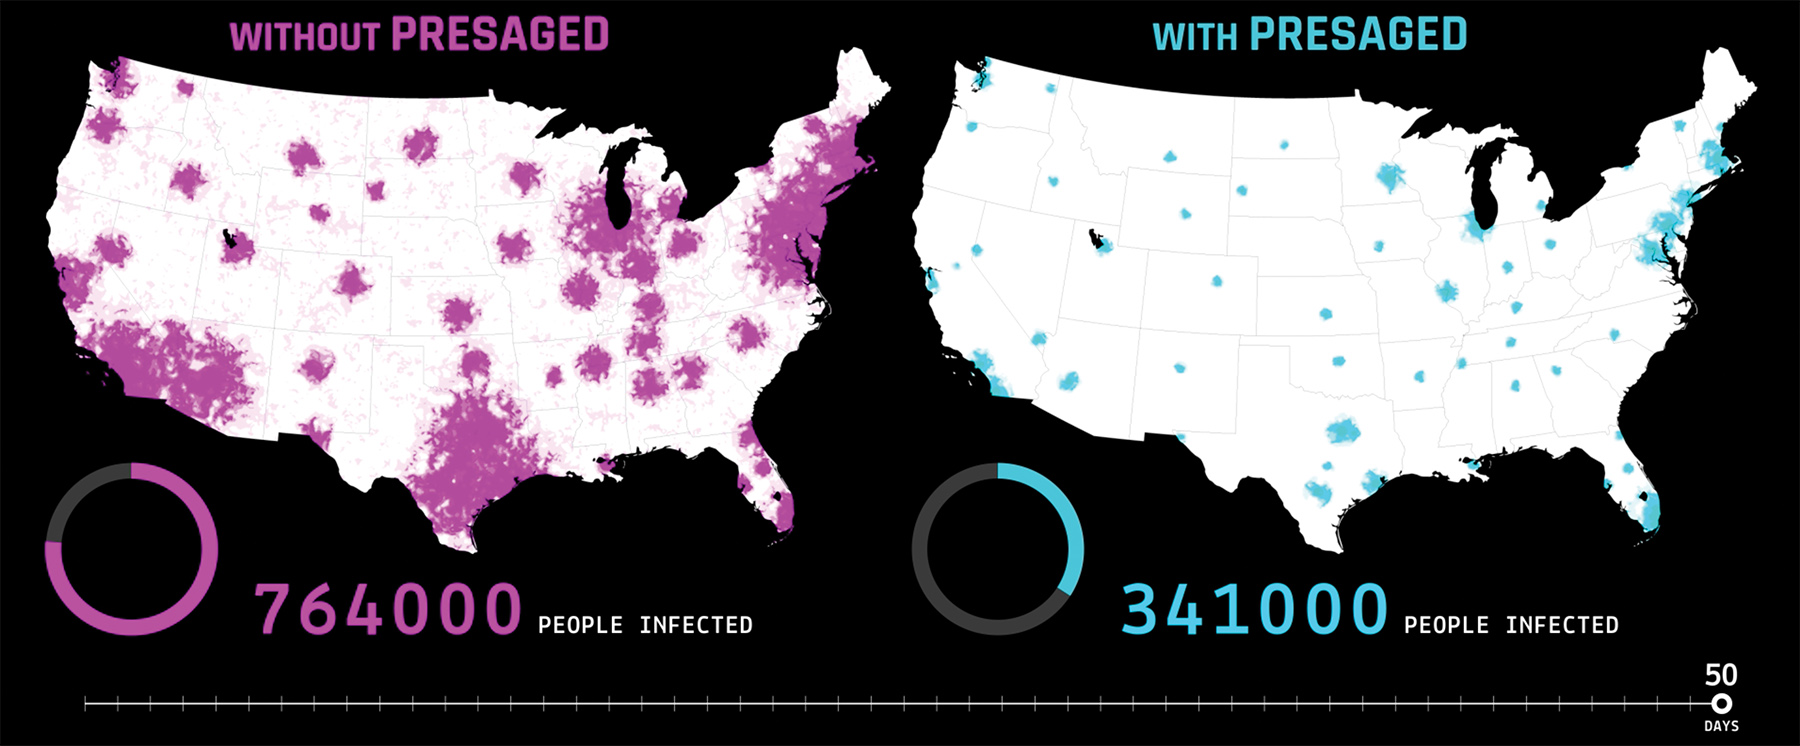 Graphic showing disease spread